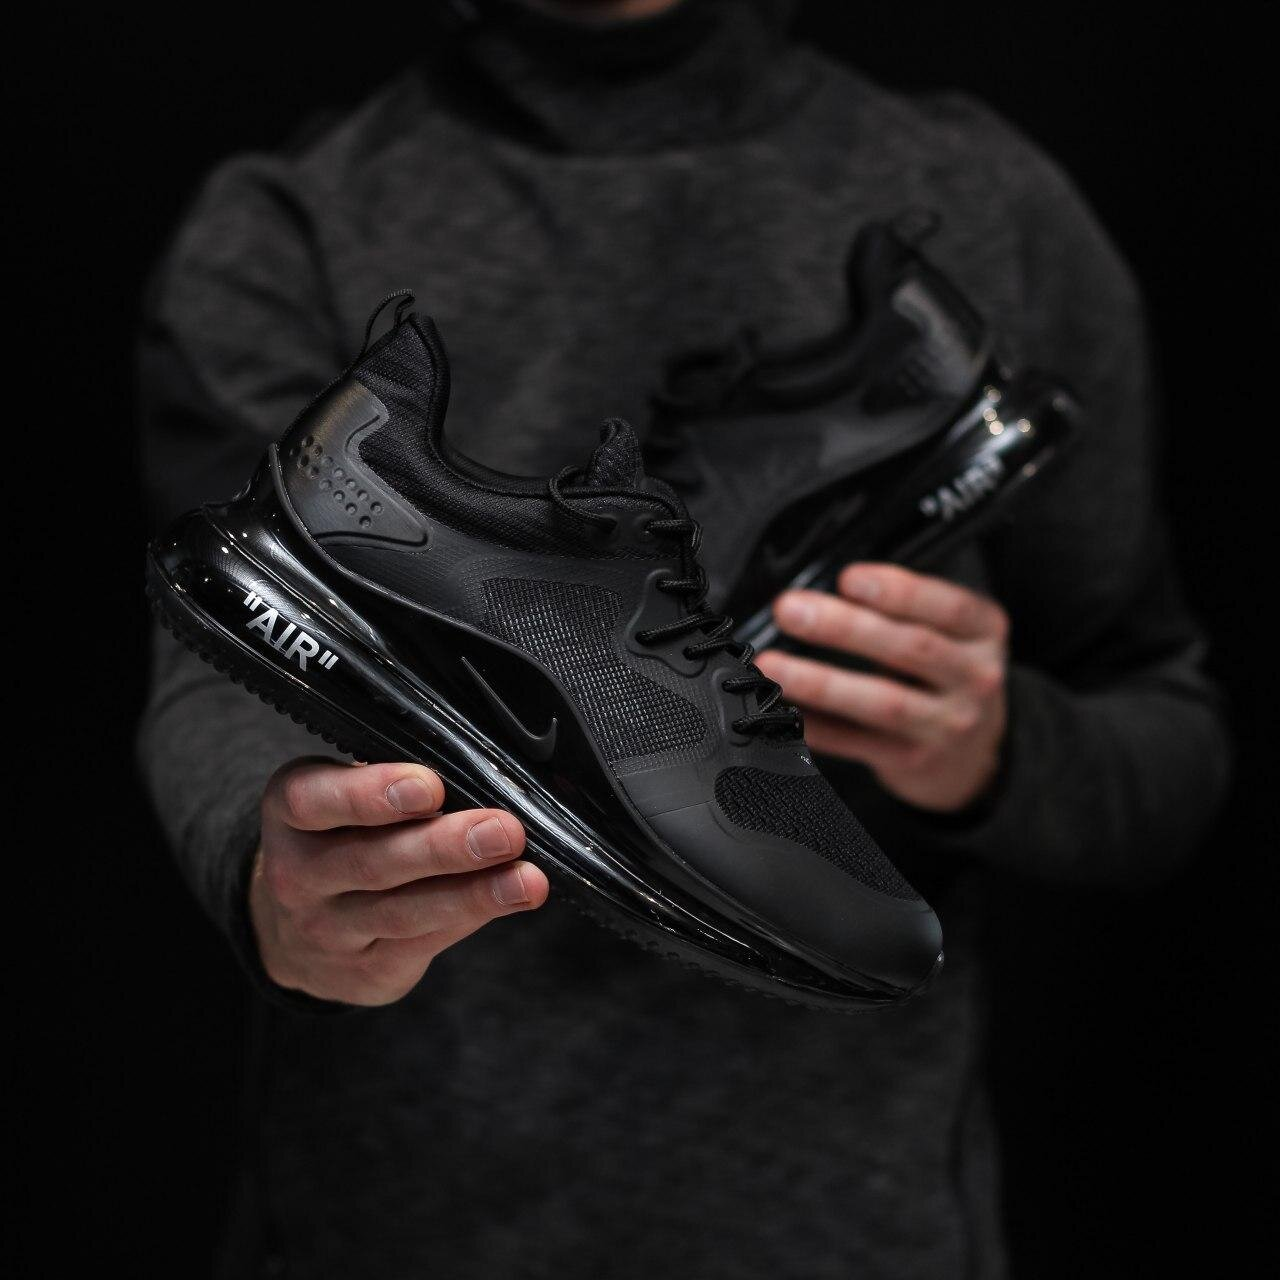 Кроссовки NK Air Max 720 V2 Full Black ( Реплика ААА+ ), 41